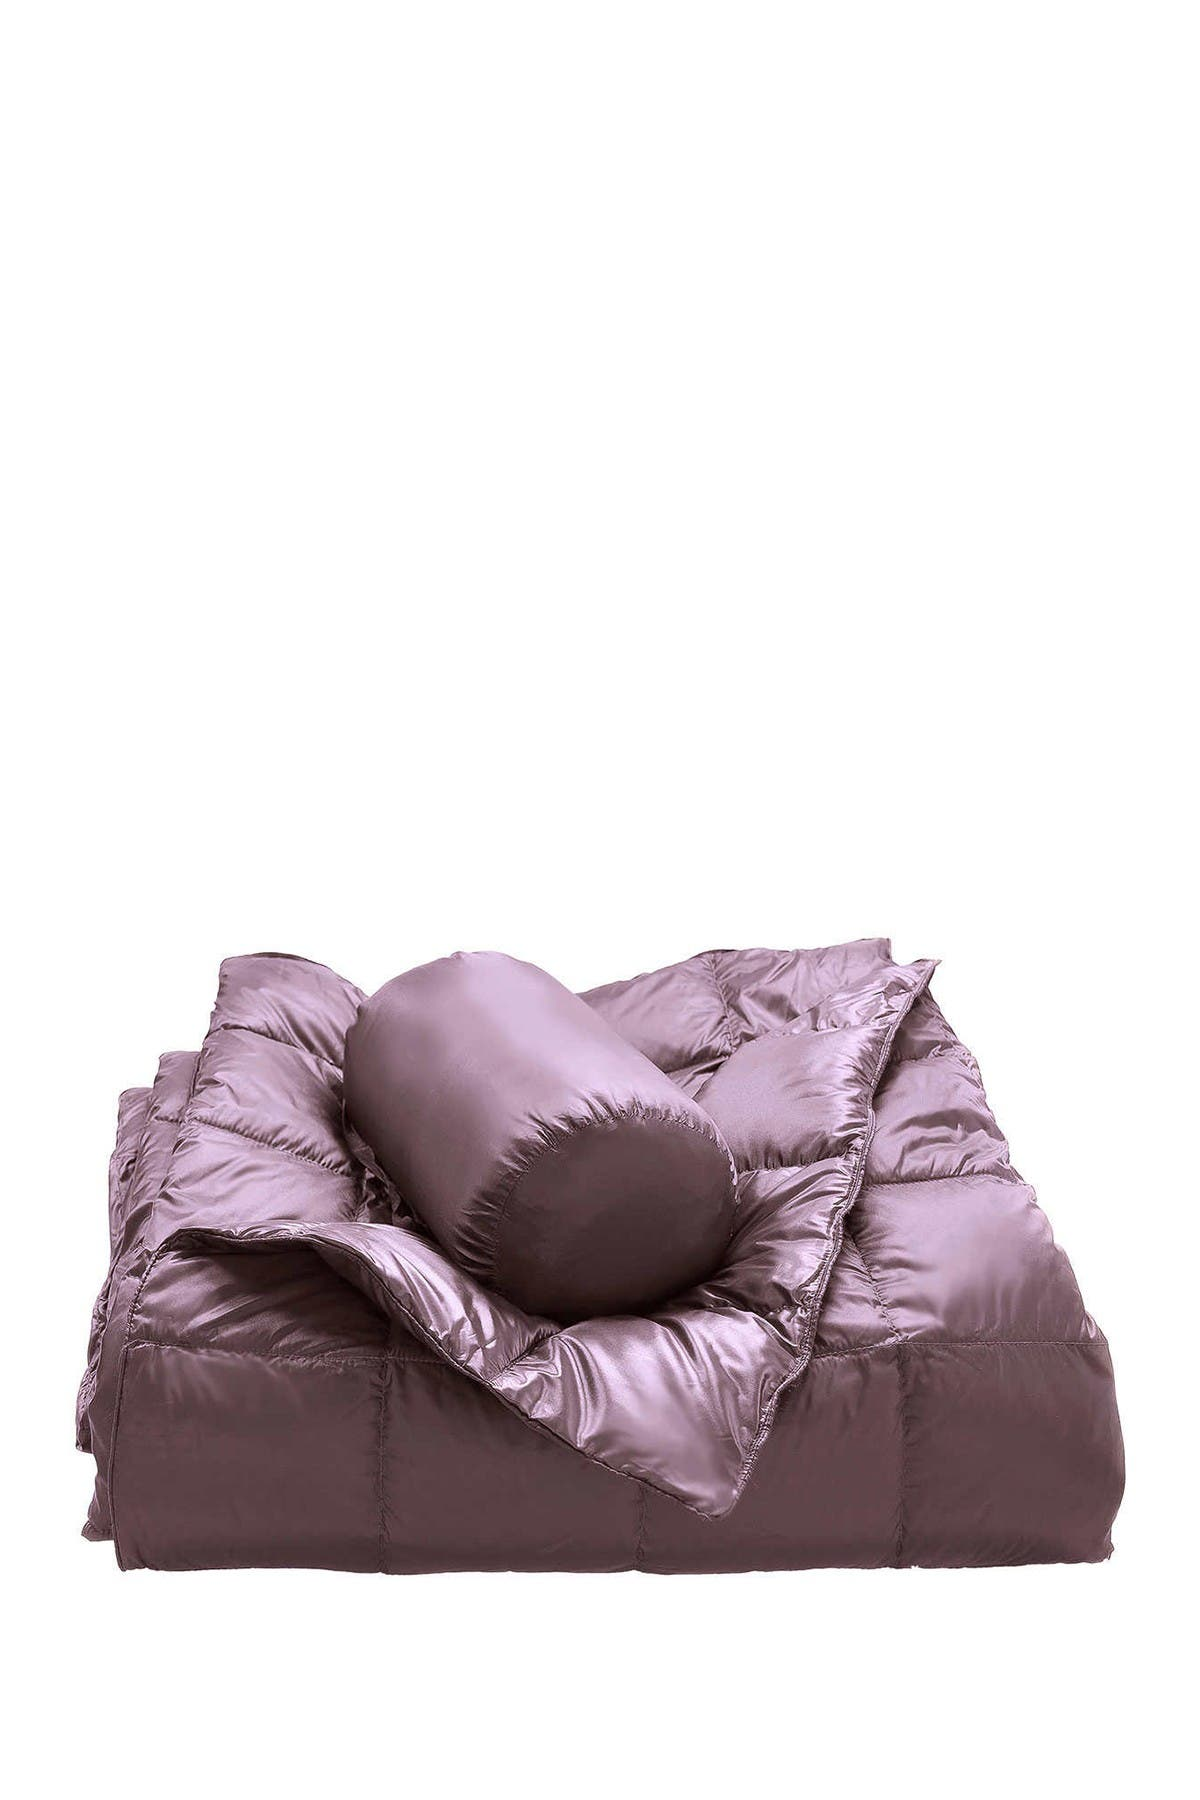 Image of Blue Ridge Home Fashions Warm & Cozy Packable Duck Down Throw - Amethyst